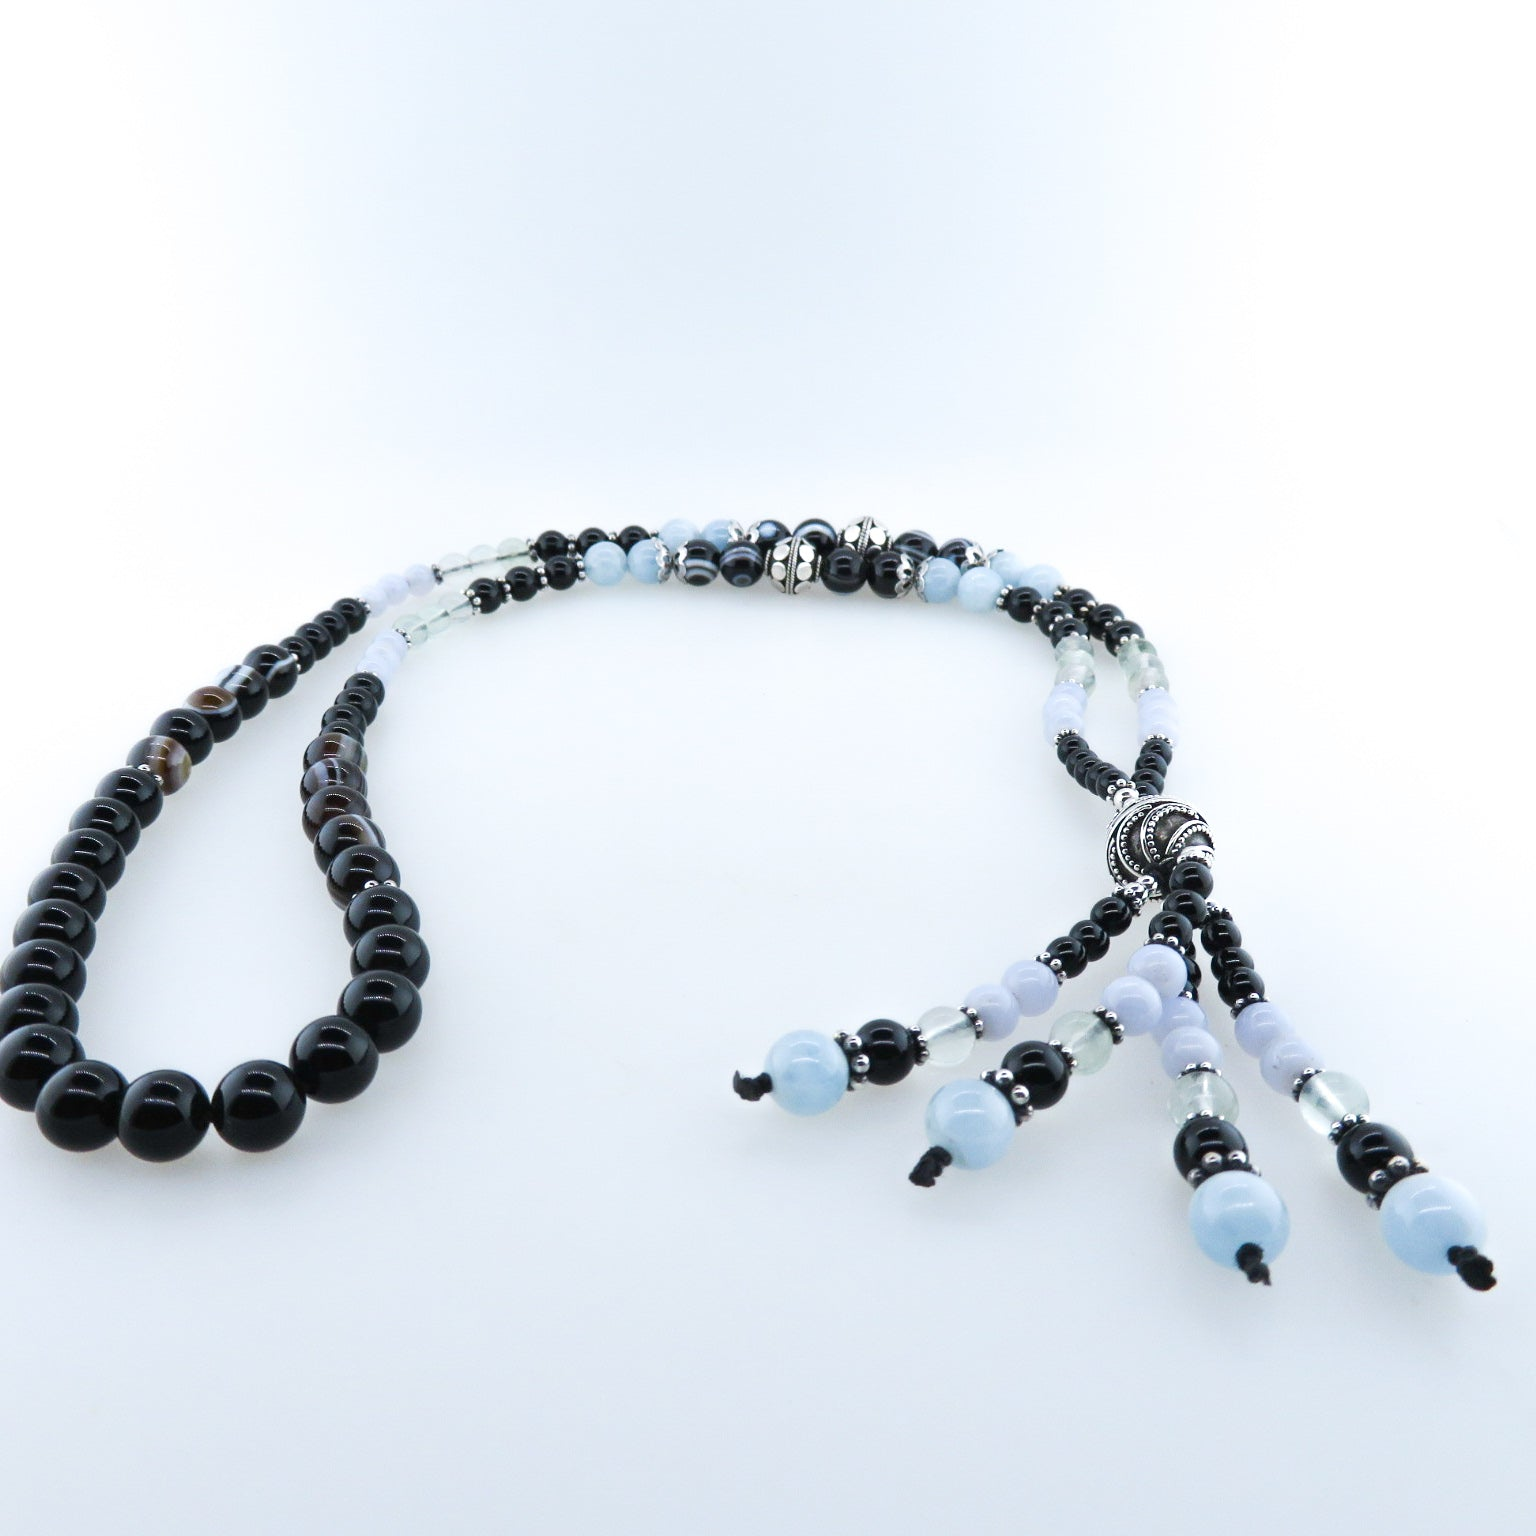 Black Onyx Necklace with Aquamarine, Fluorite, Agate, Chalcedony and Silver Beads